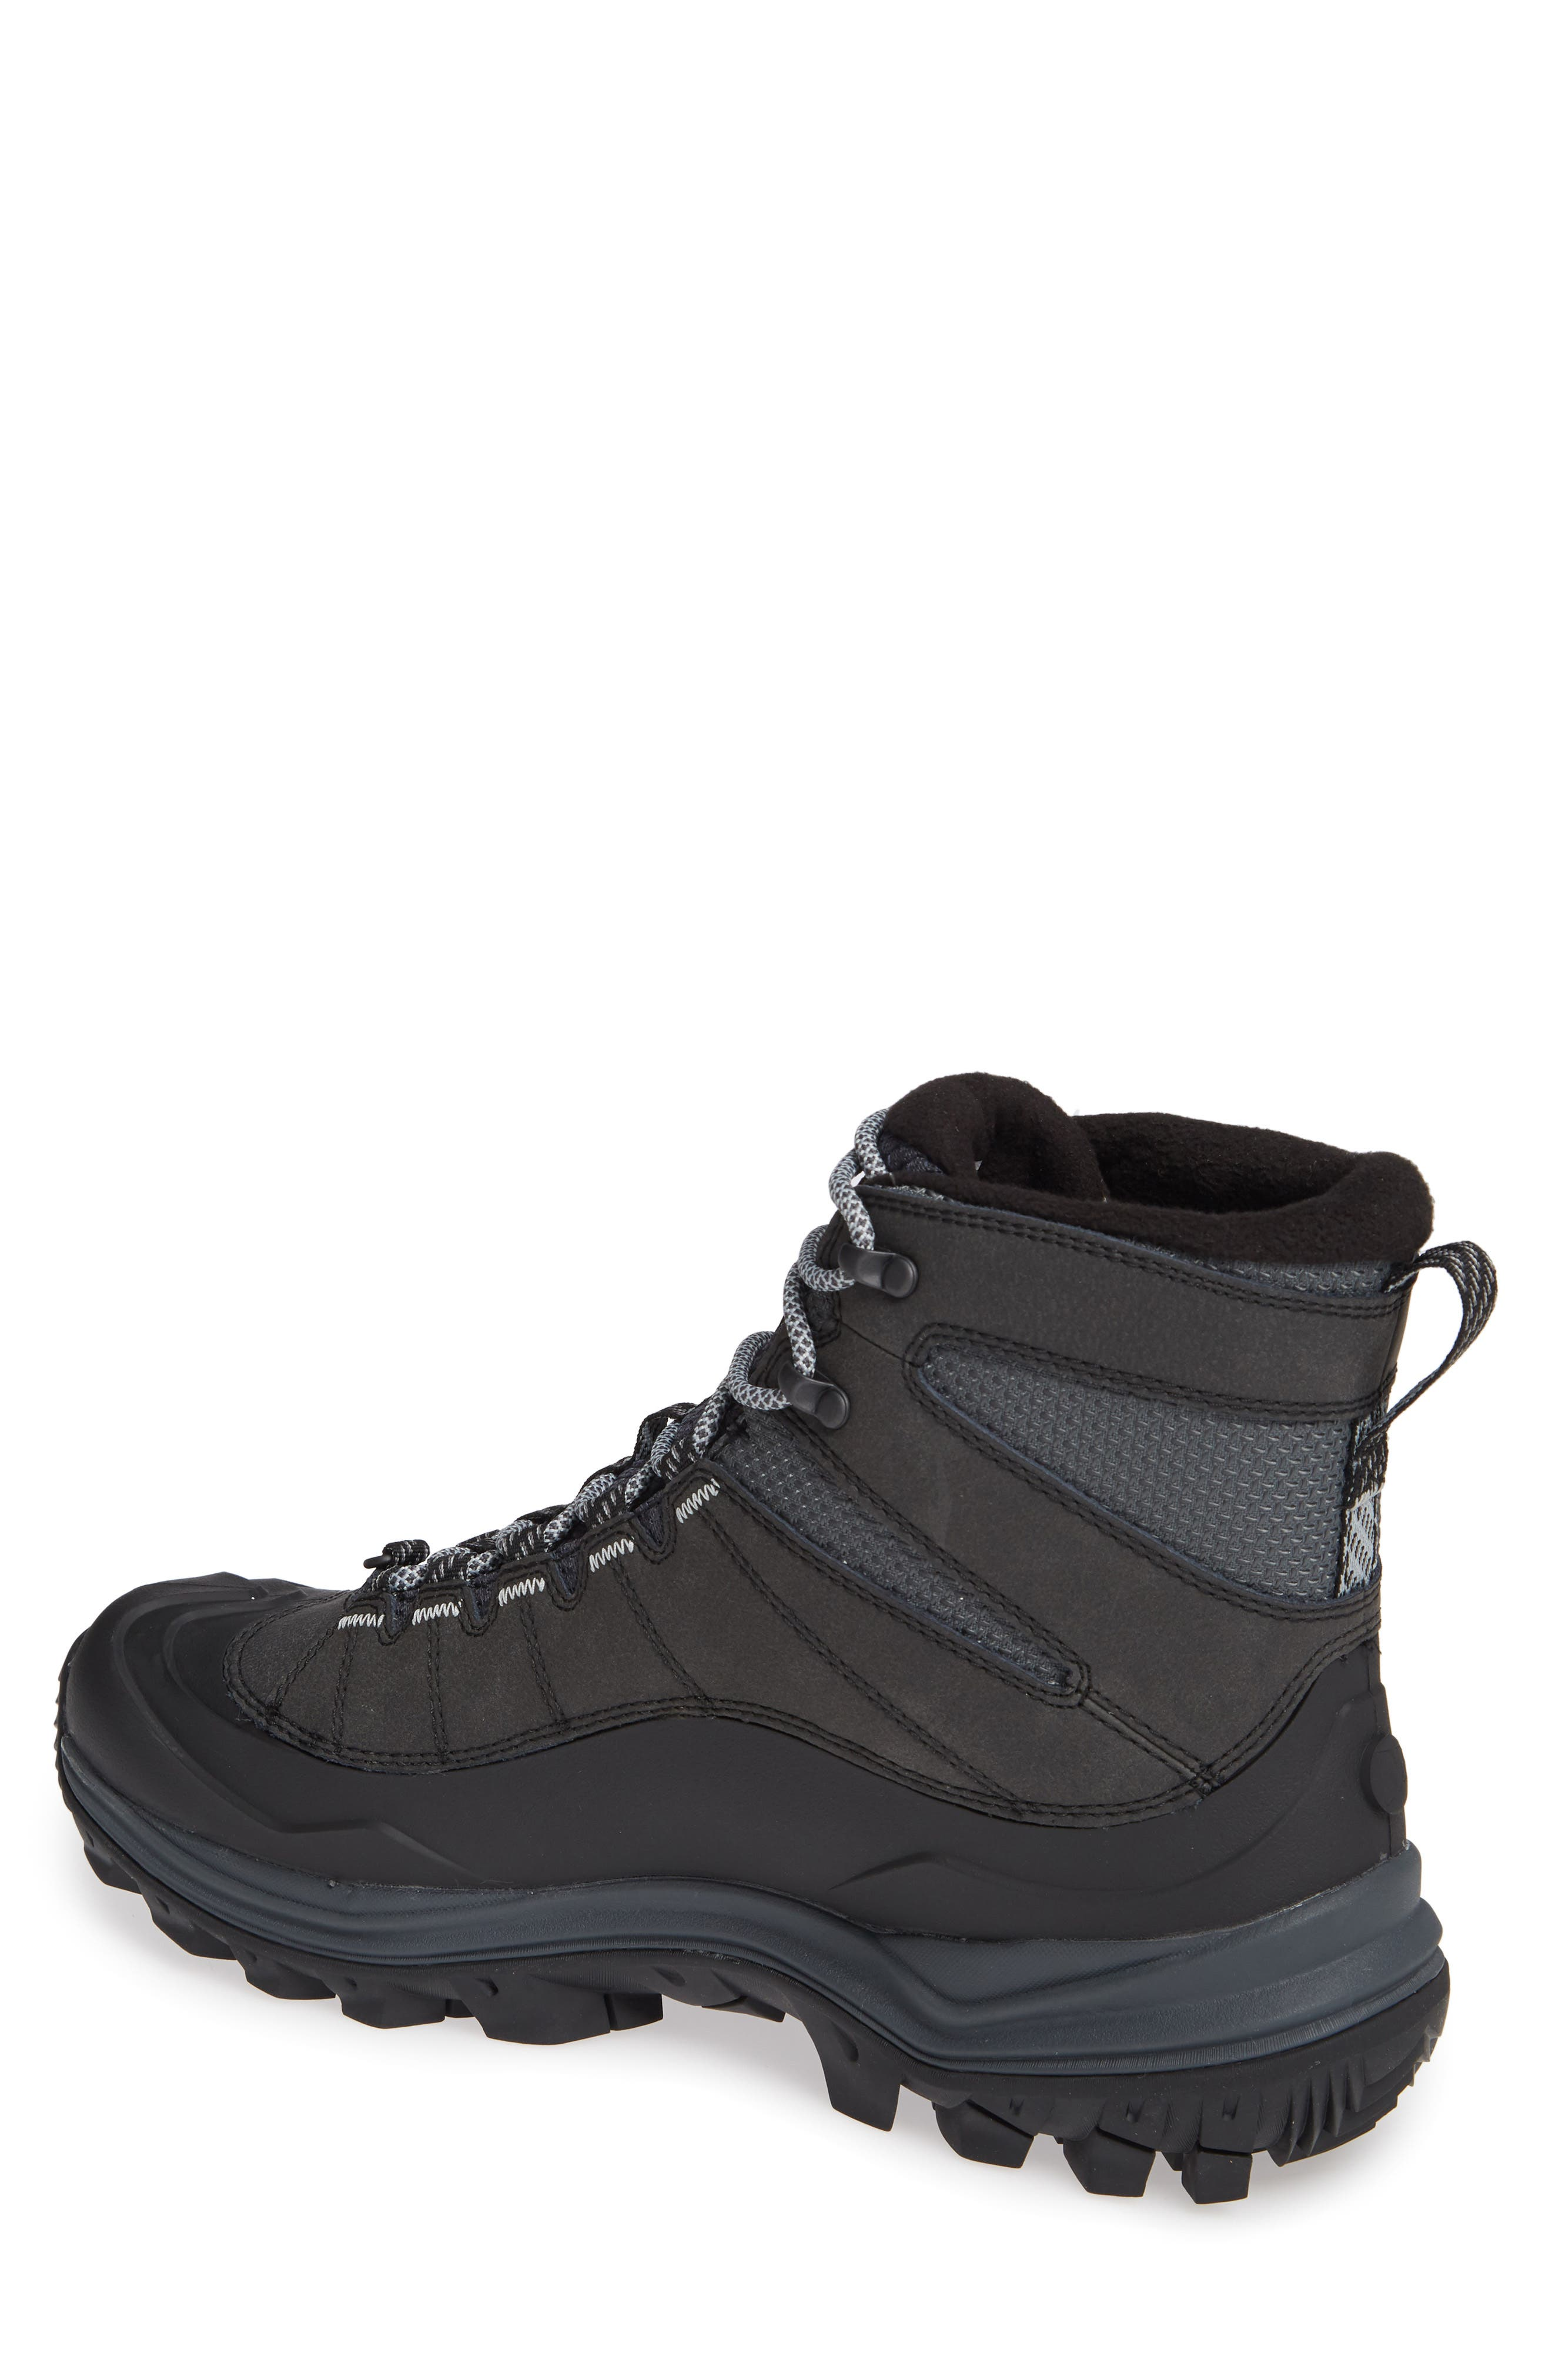 Thermo Chill Waterproof Snow Boot,                             Alternate thumbnail 2, color,                             001